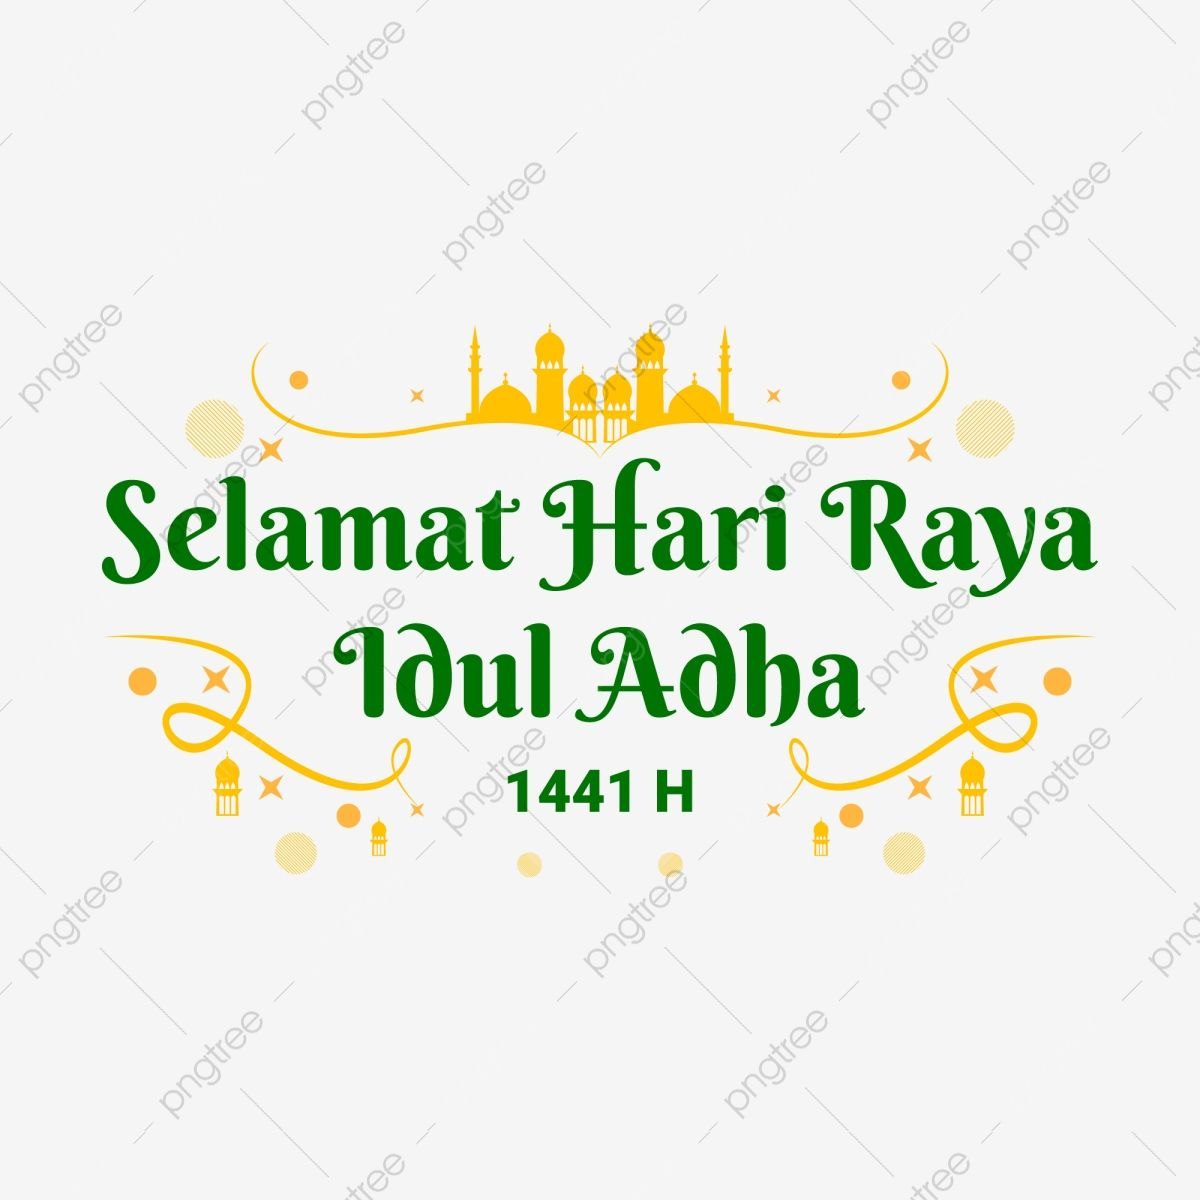 selamat hari raya idul adha 1441 h greeting text yellow green idul adha eid al adha eid adha png and vector with transparent background for free download in 2020 eid al pinterest